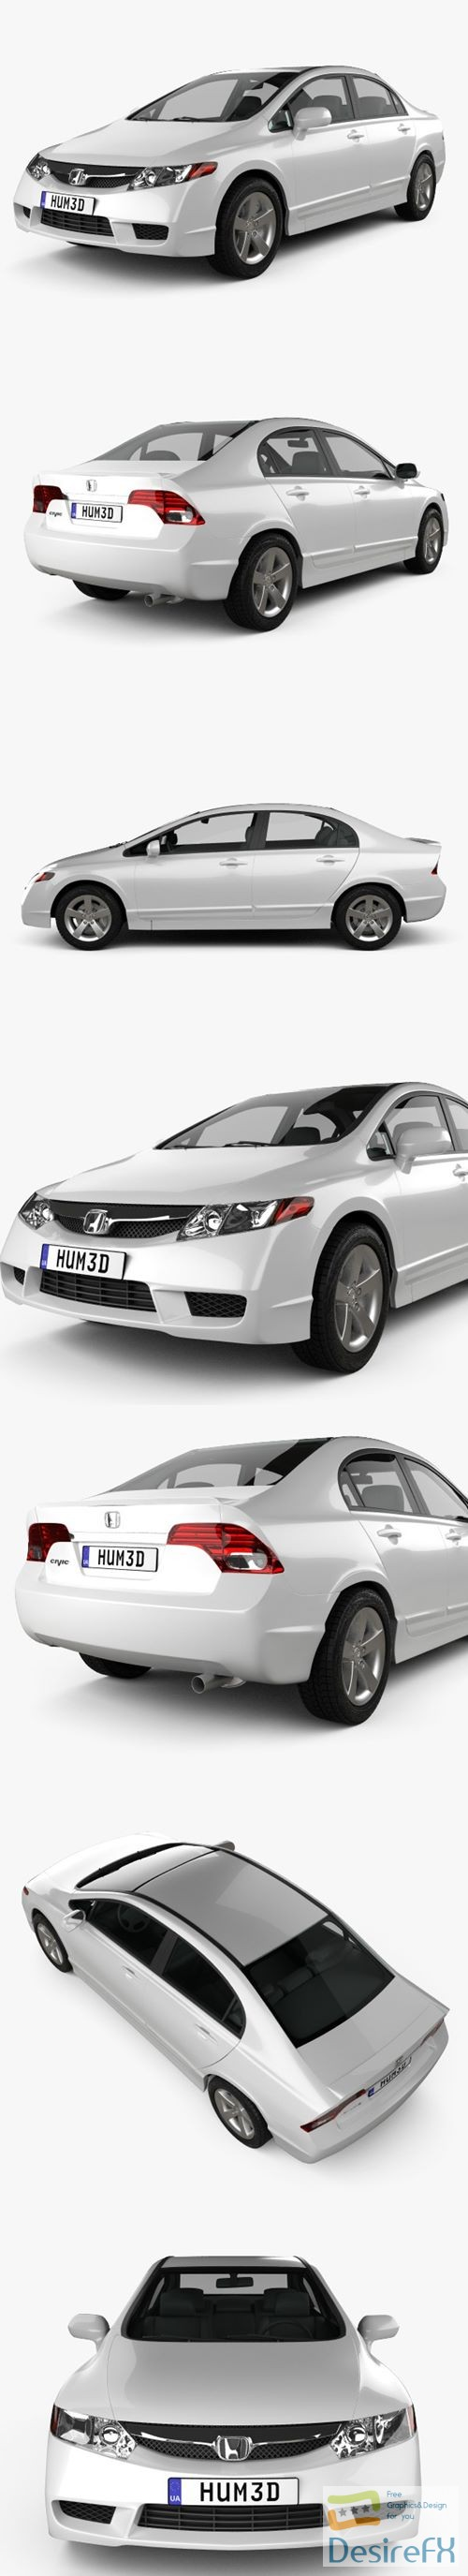 3d-models - Honda Civic Sedan 2009 3D Model